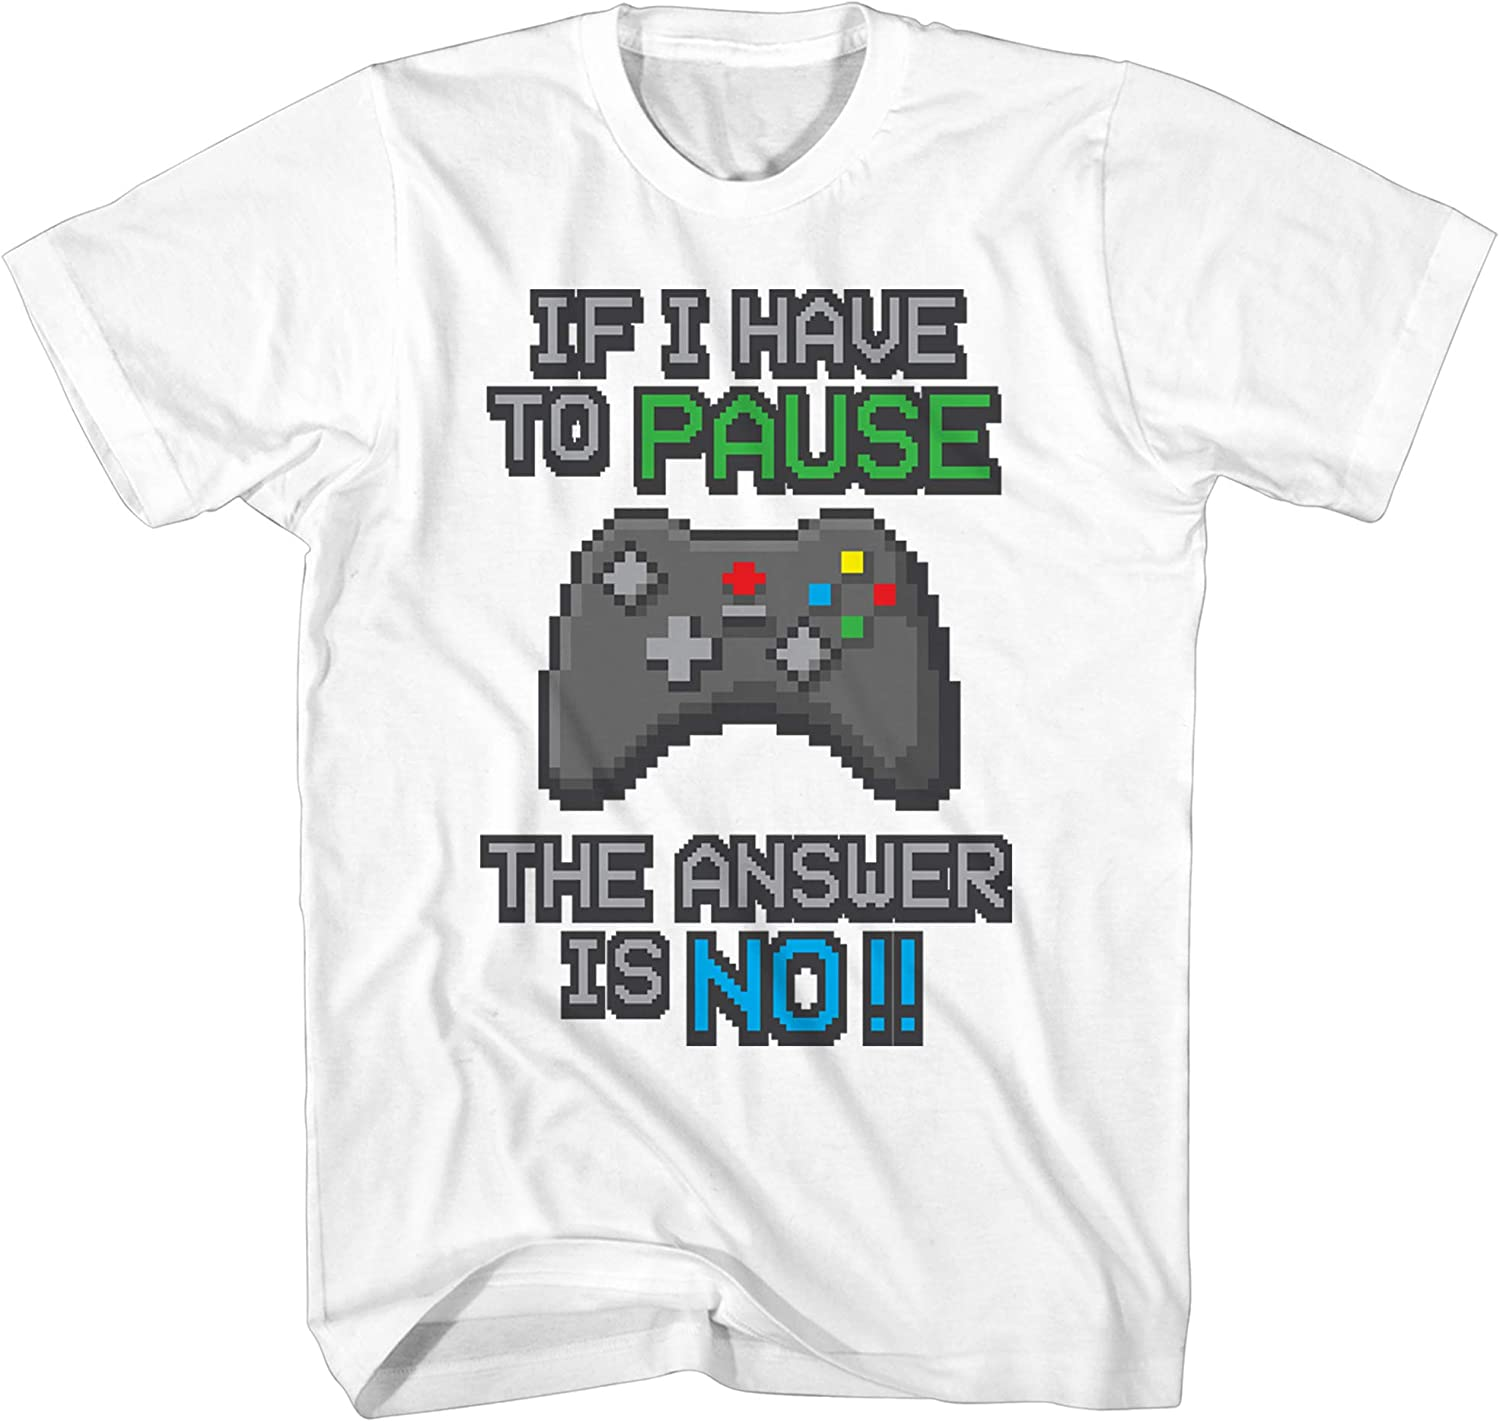 Kids T-Shirt Witty Fashions I Paused My Game to Be Here Funny Video Gamer Humor Gift